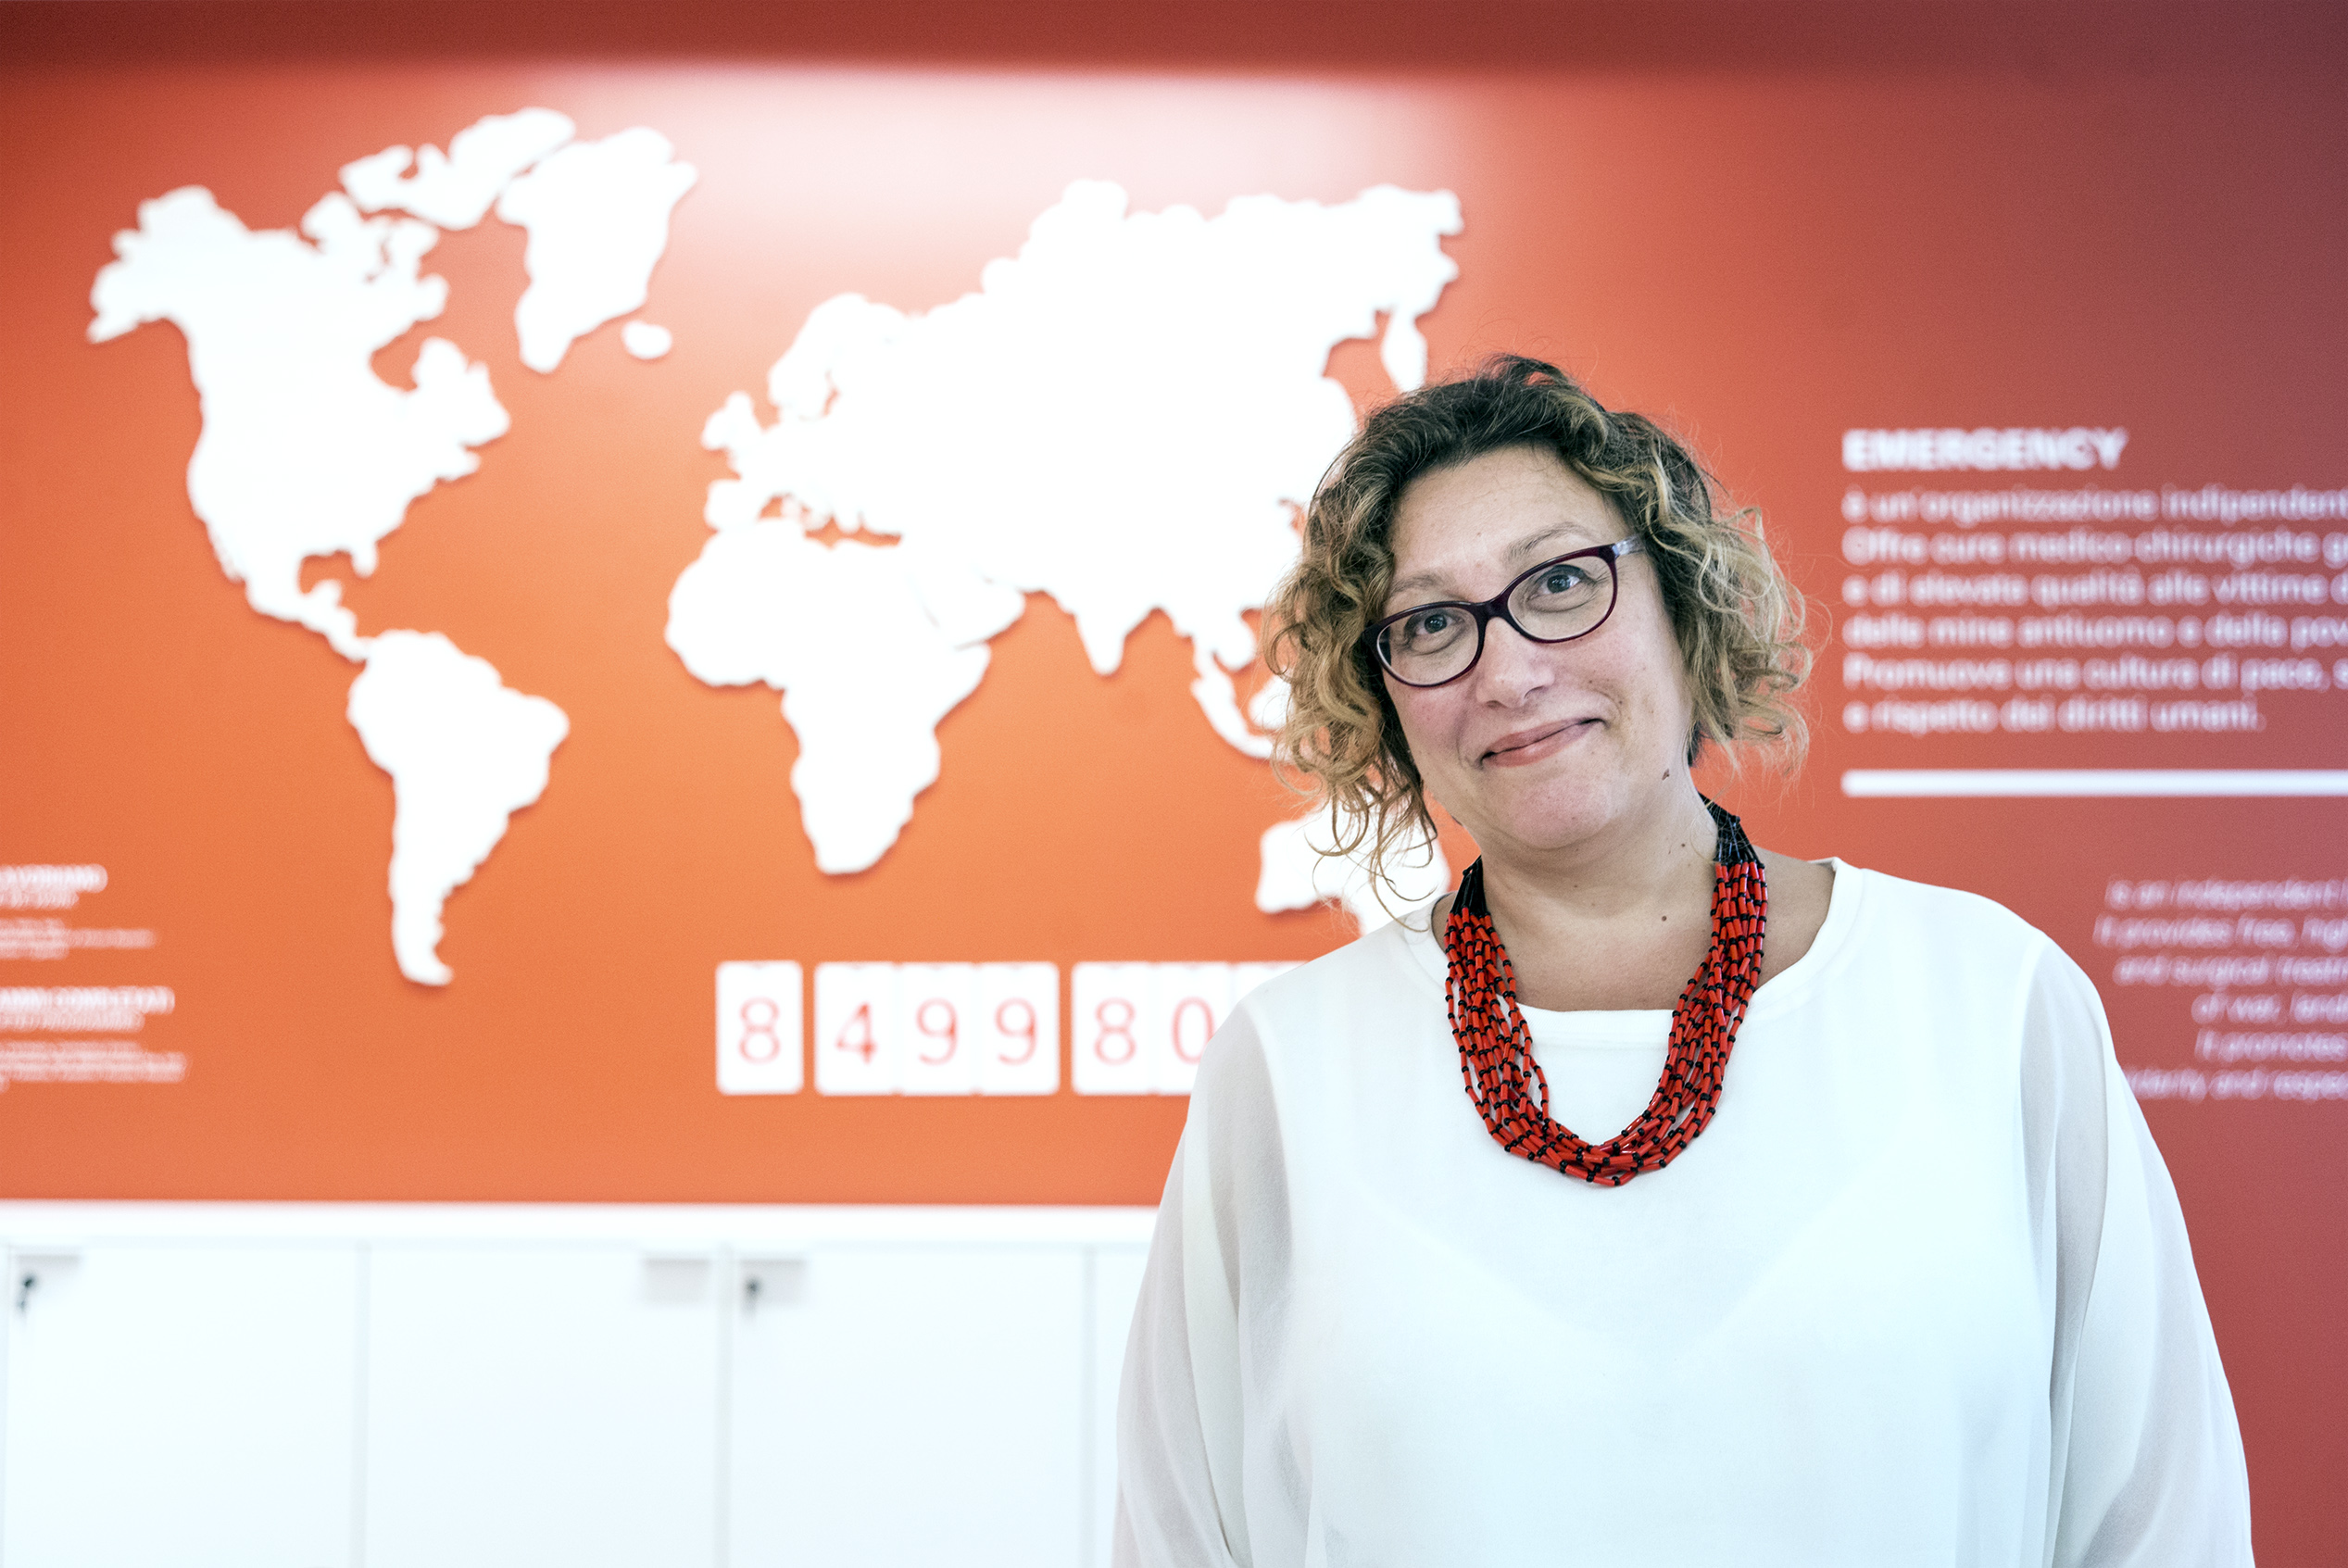 Africa, Healthcare Of Excellence Possible Says Rossella Miccio, President Of Emergency